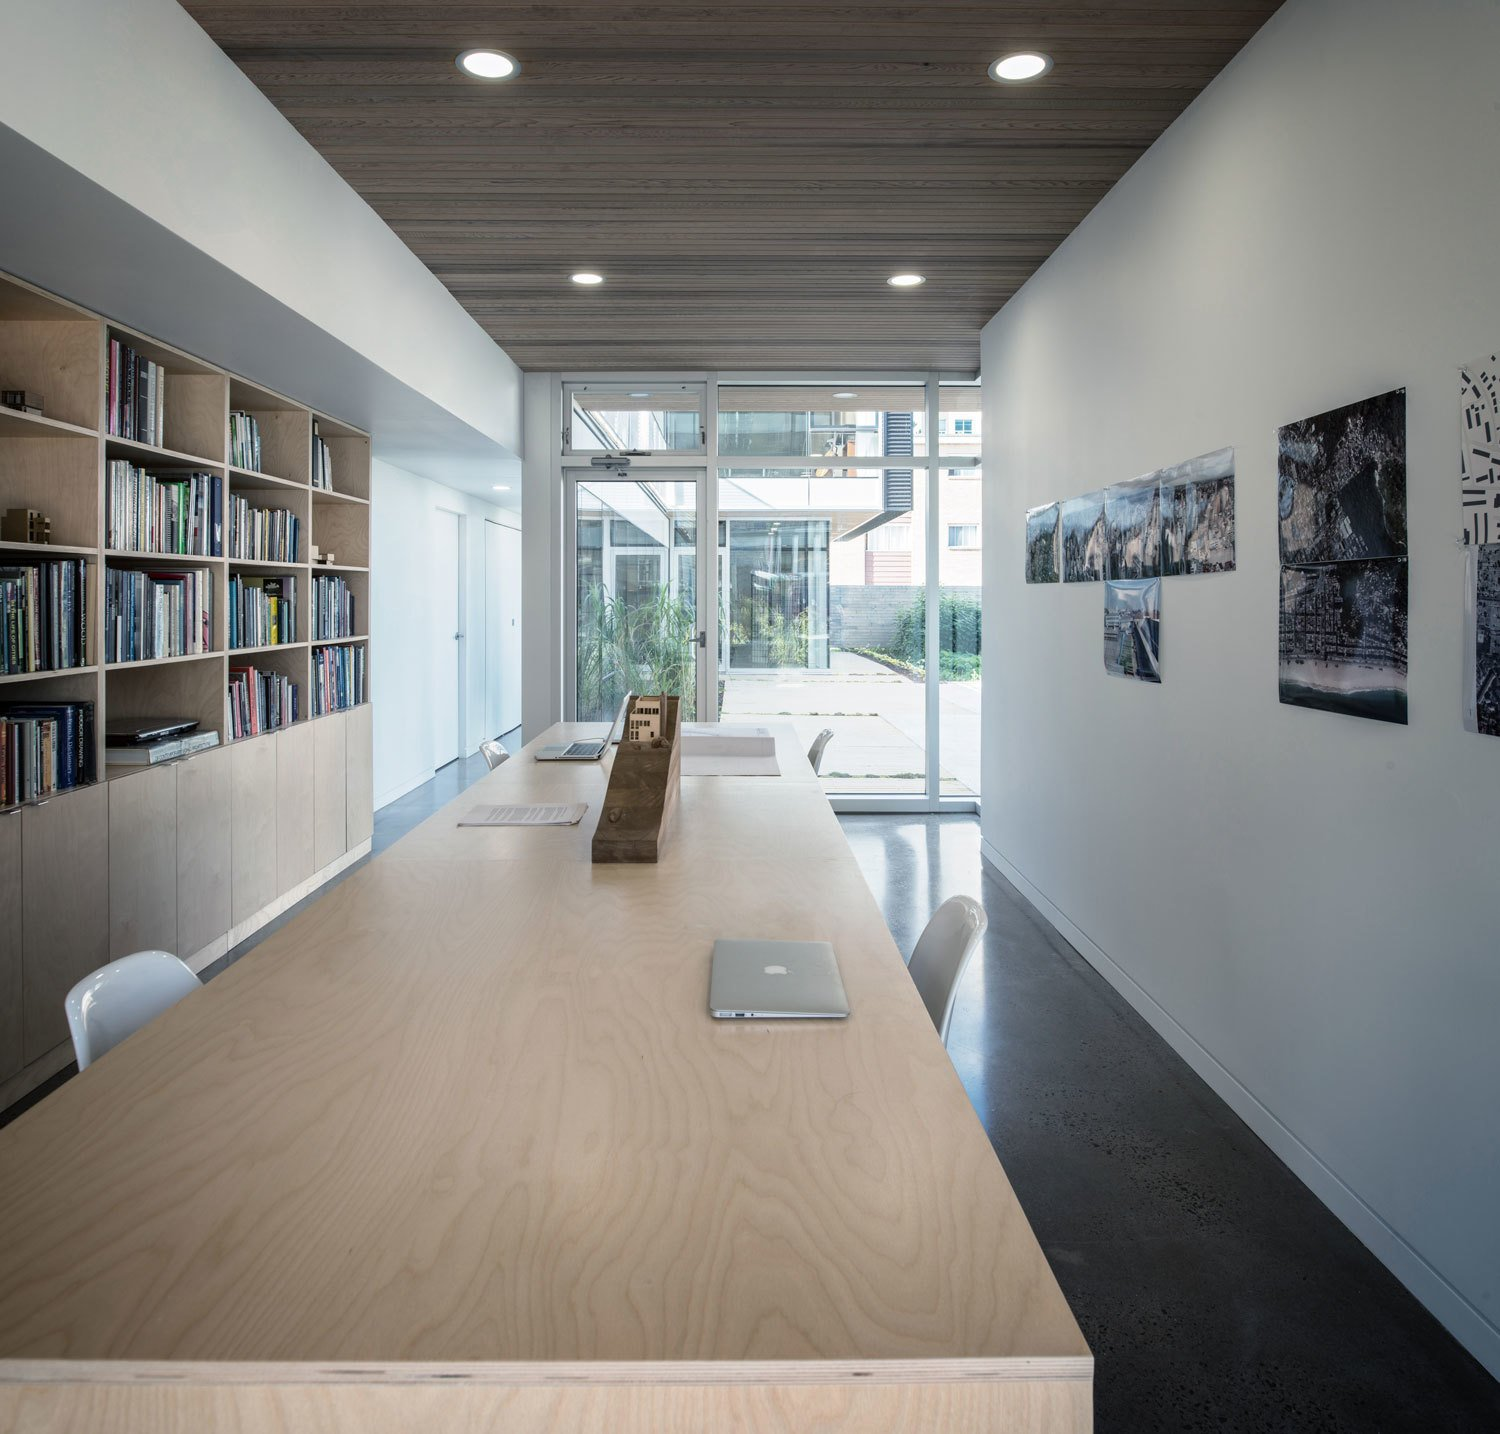 Positioned on the ground floor, the office enjoys spacial privacy, while still having intimate interaction with the living area above and common courtyard. Tagged: Office, Study, Shelves, Desk, Chair, and Bookcase.  Photo 9 of 9 in The Architect Next Door